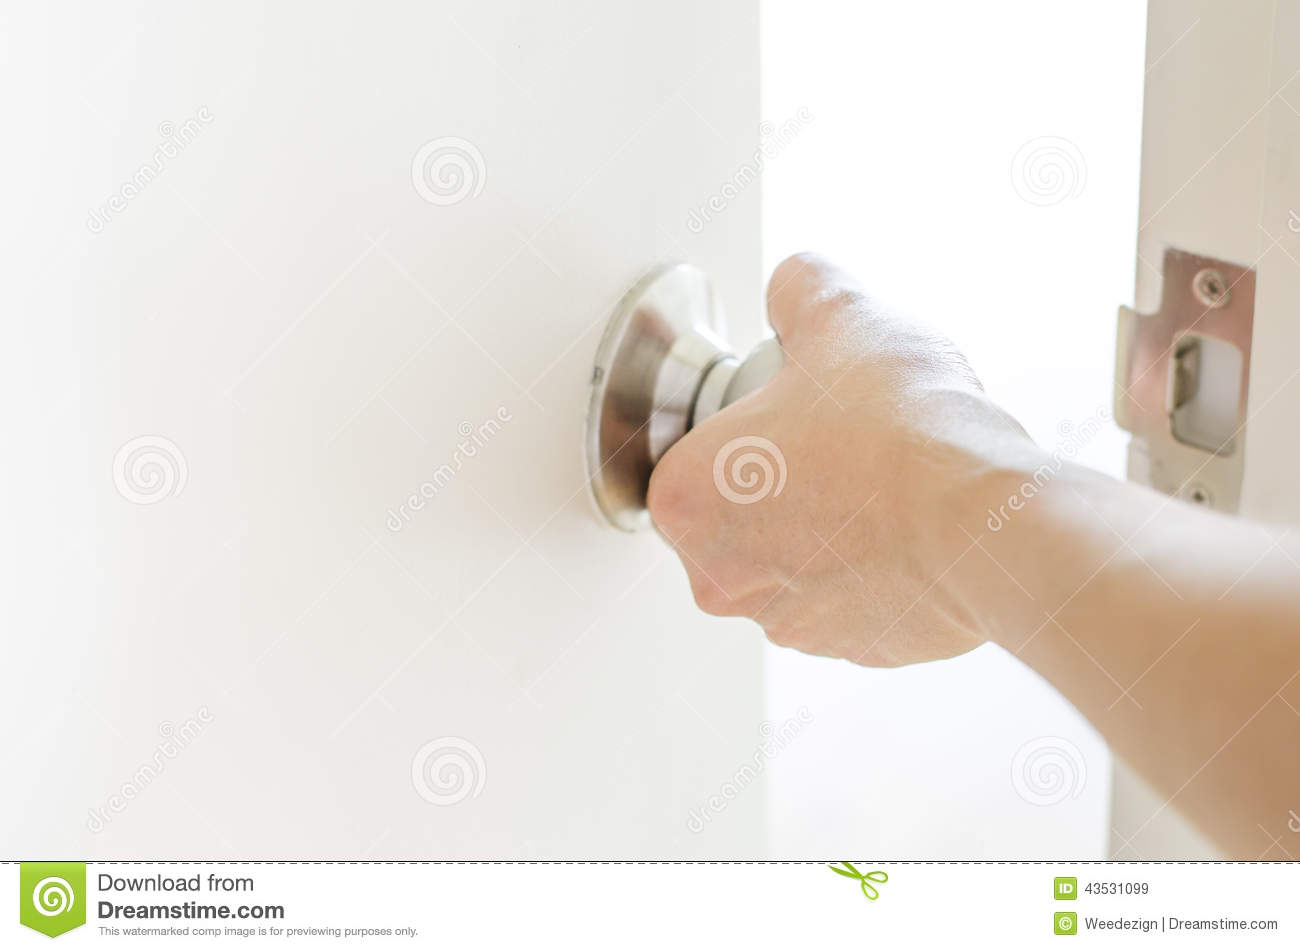 handshake door knob photo - 13